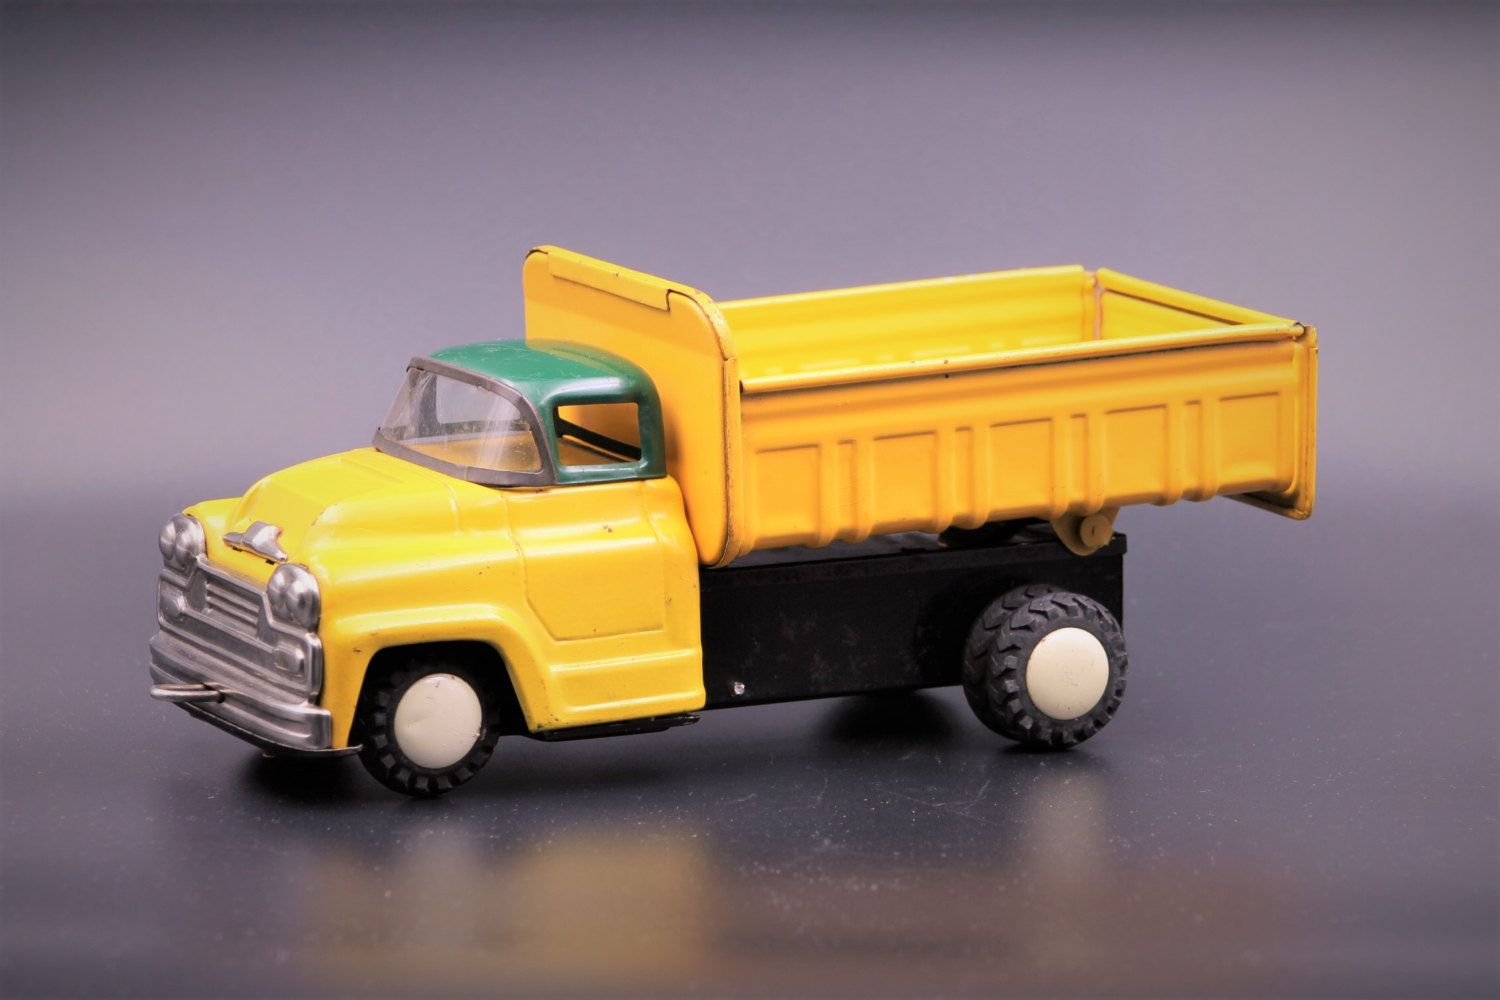 vintage tin friction toy car by asahi toy japan yellow dump truck with green - Toy Dump Trucks